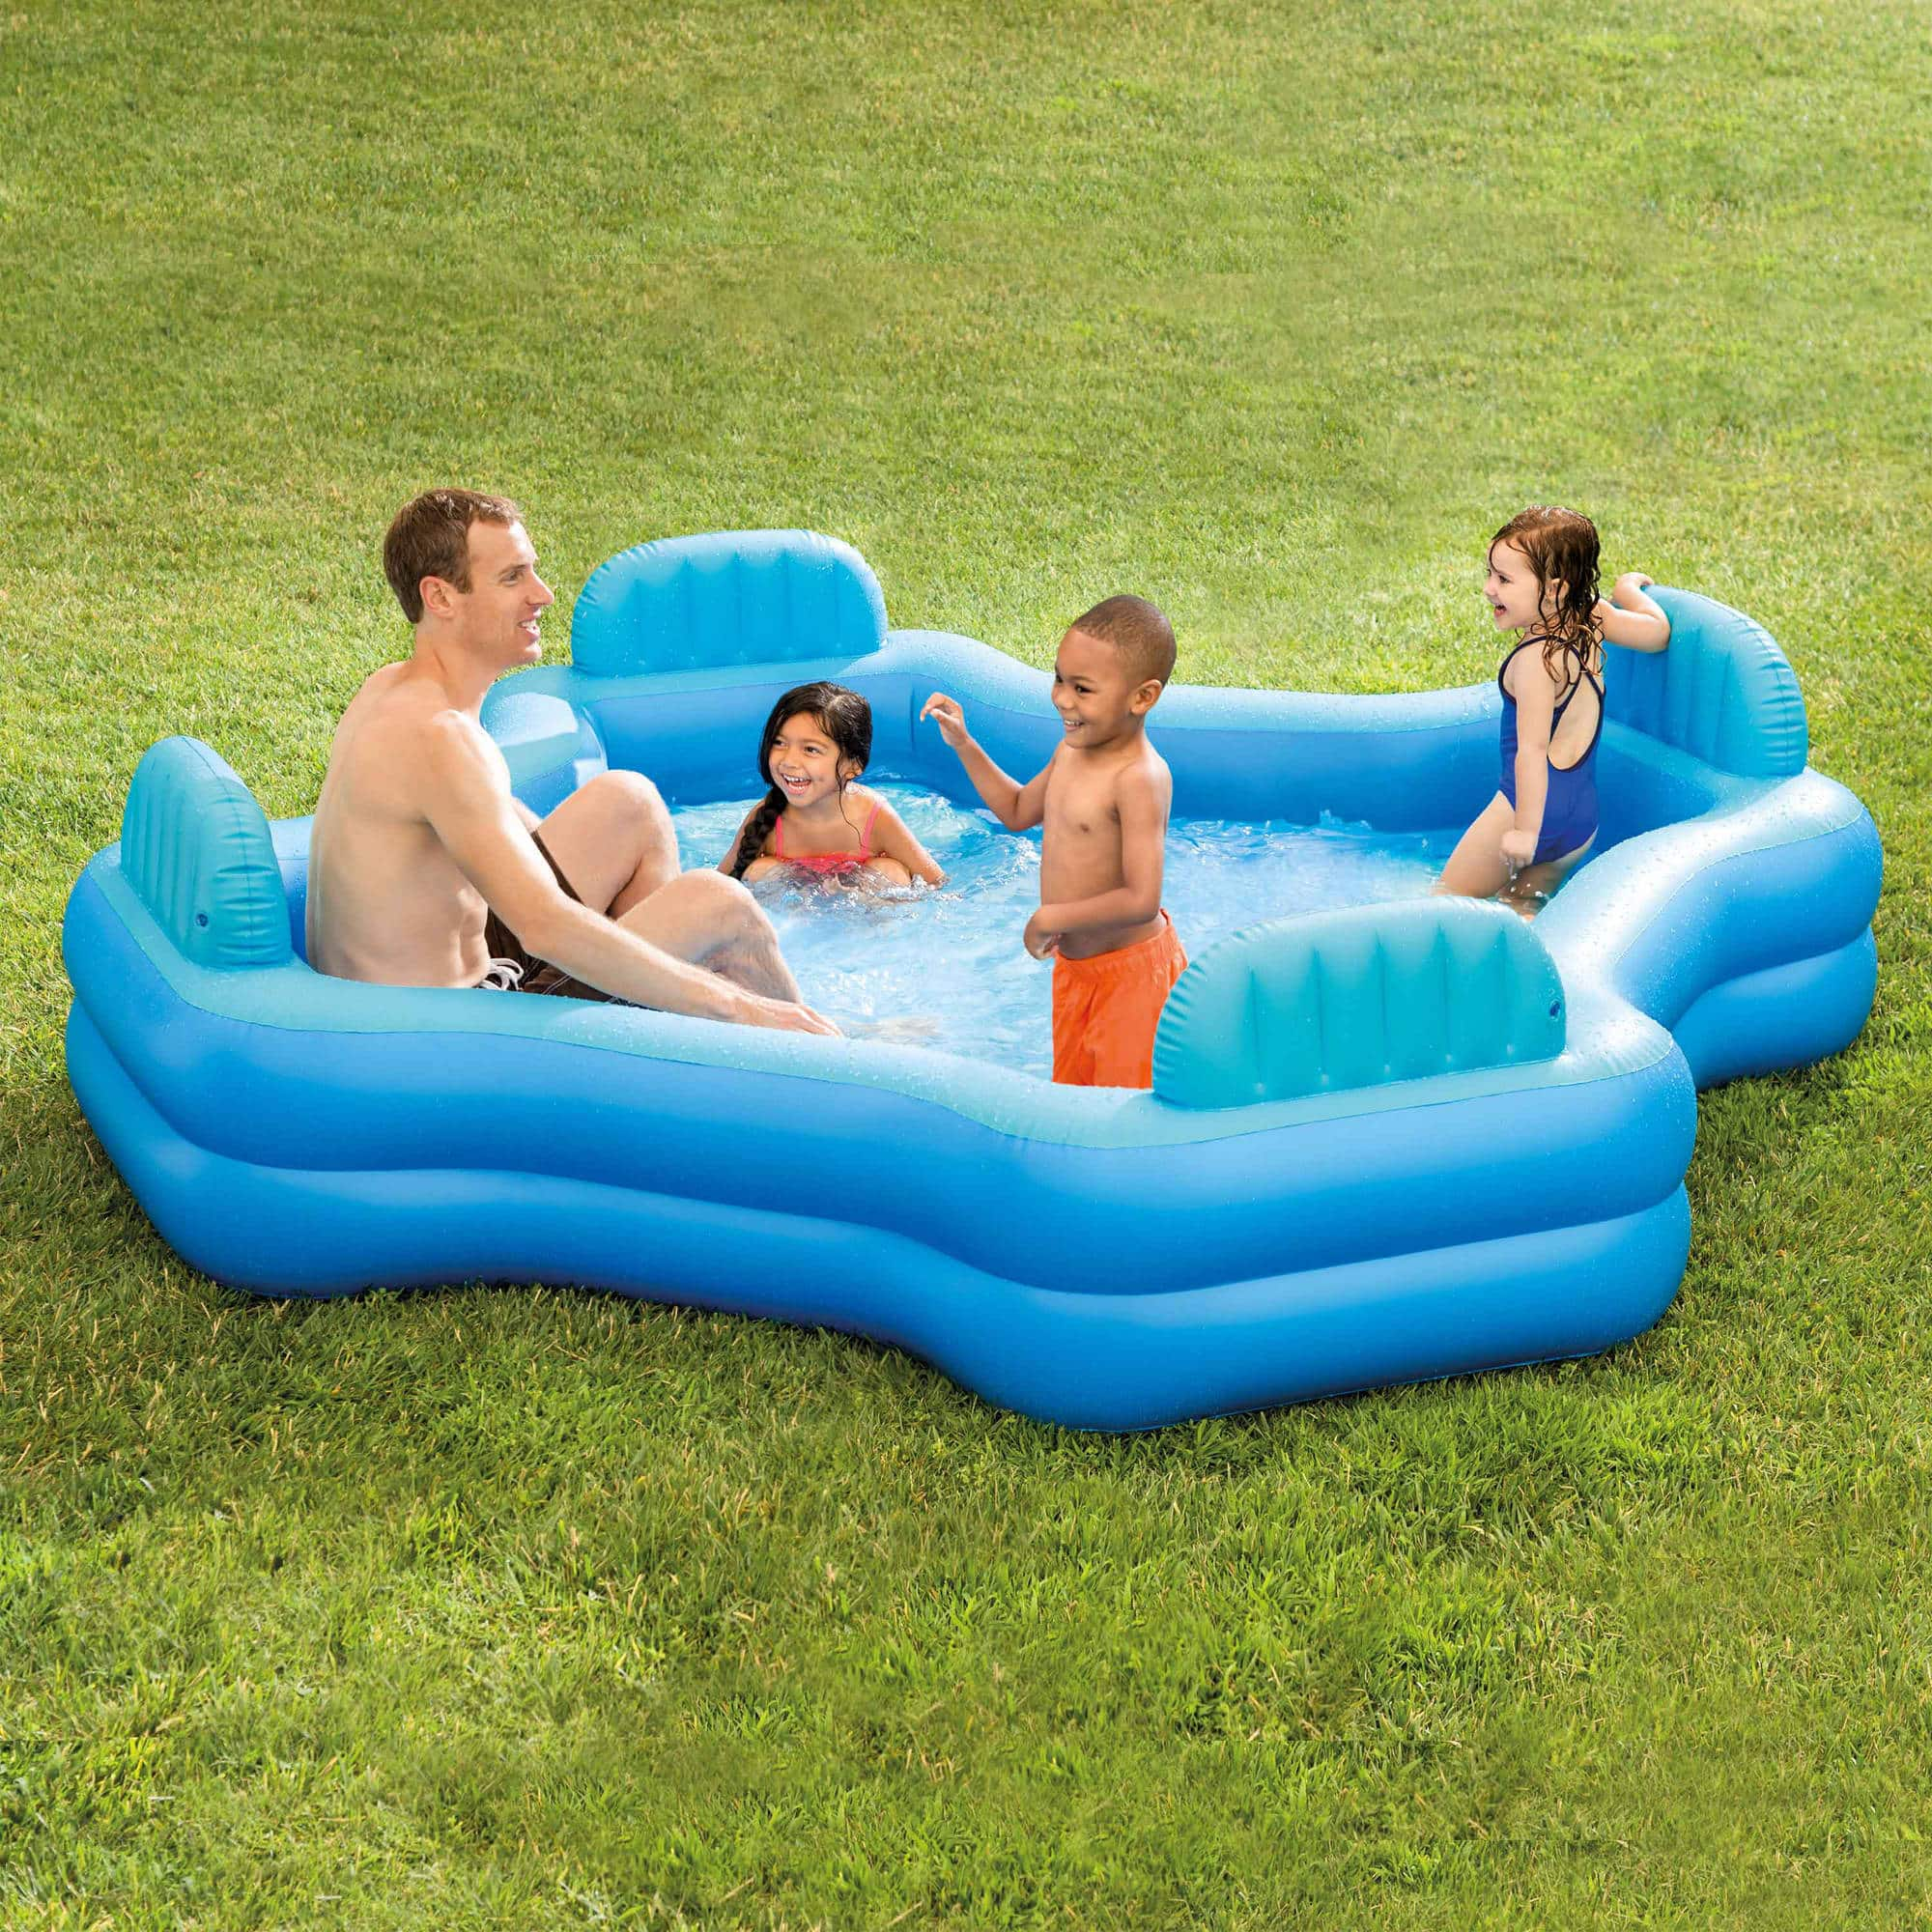 Intex Inflatable Swim Center Family Lounge Pool for $39.97 (Regularly $50) + Free Shipping